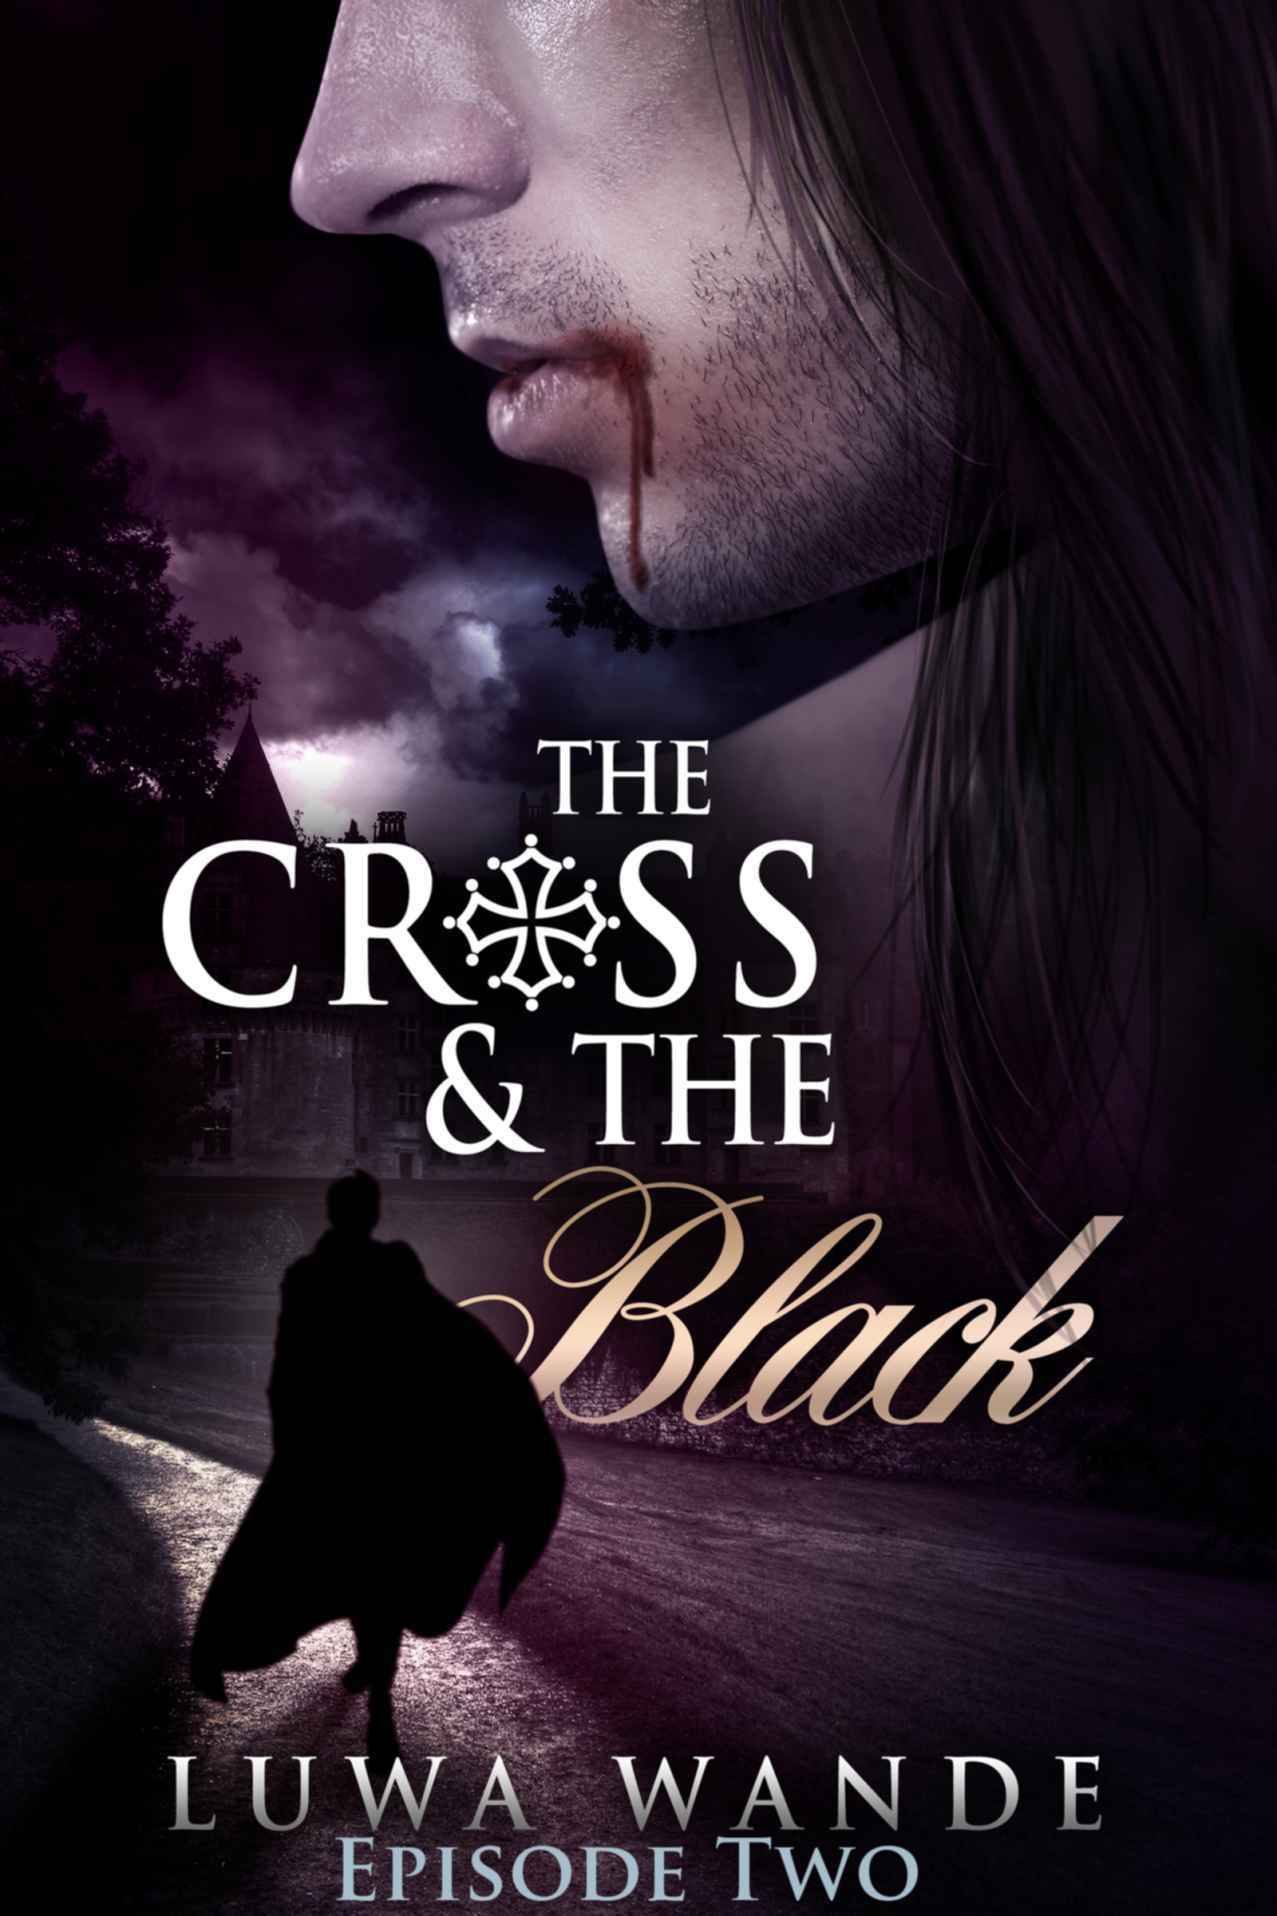 The Cross and the Black 2 by Luwa Wande